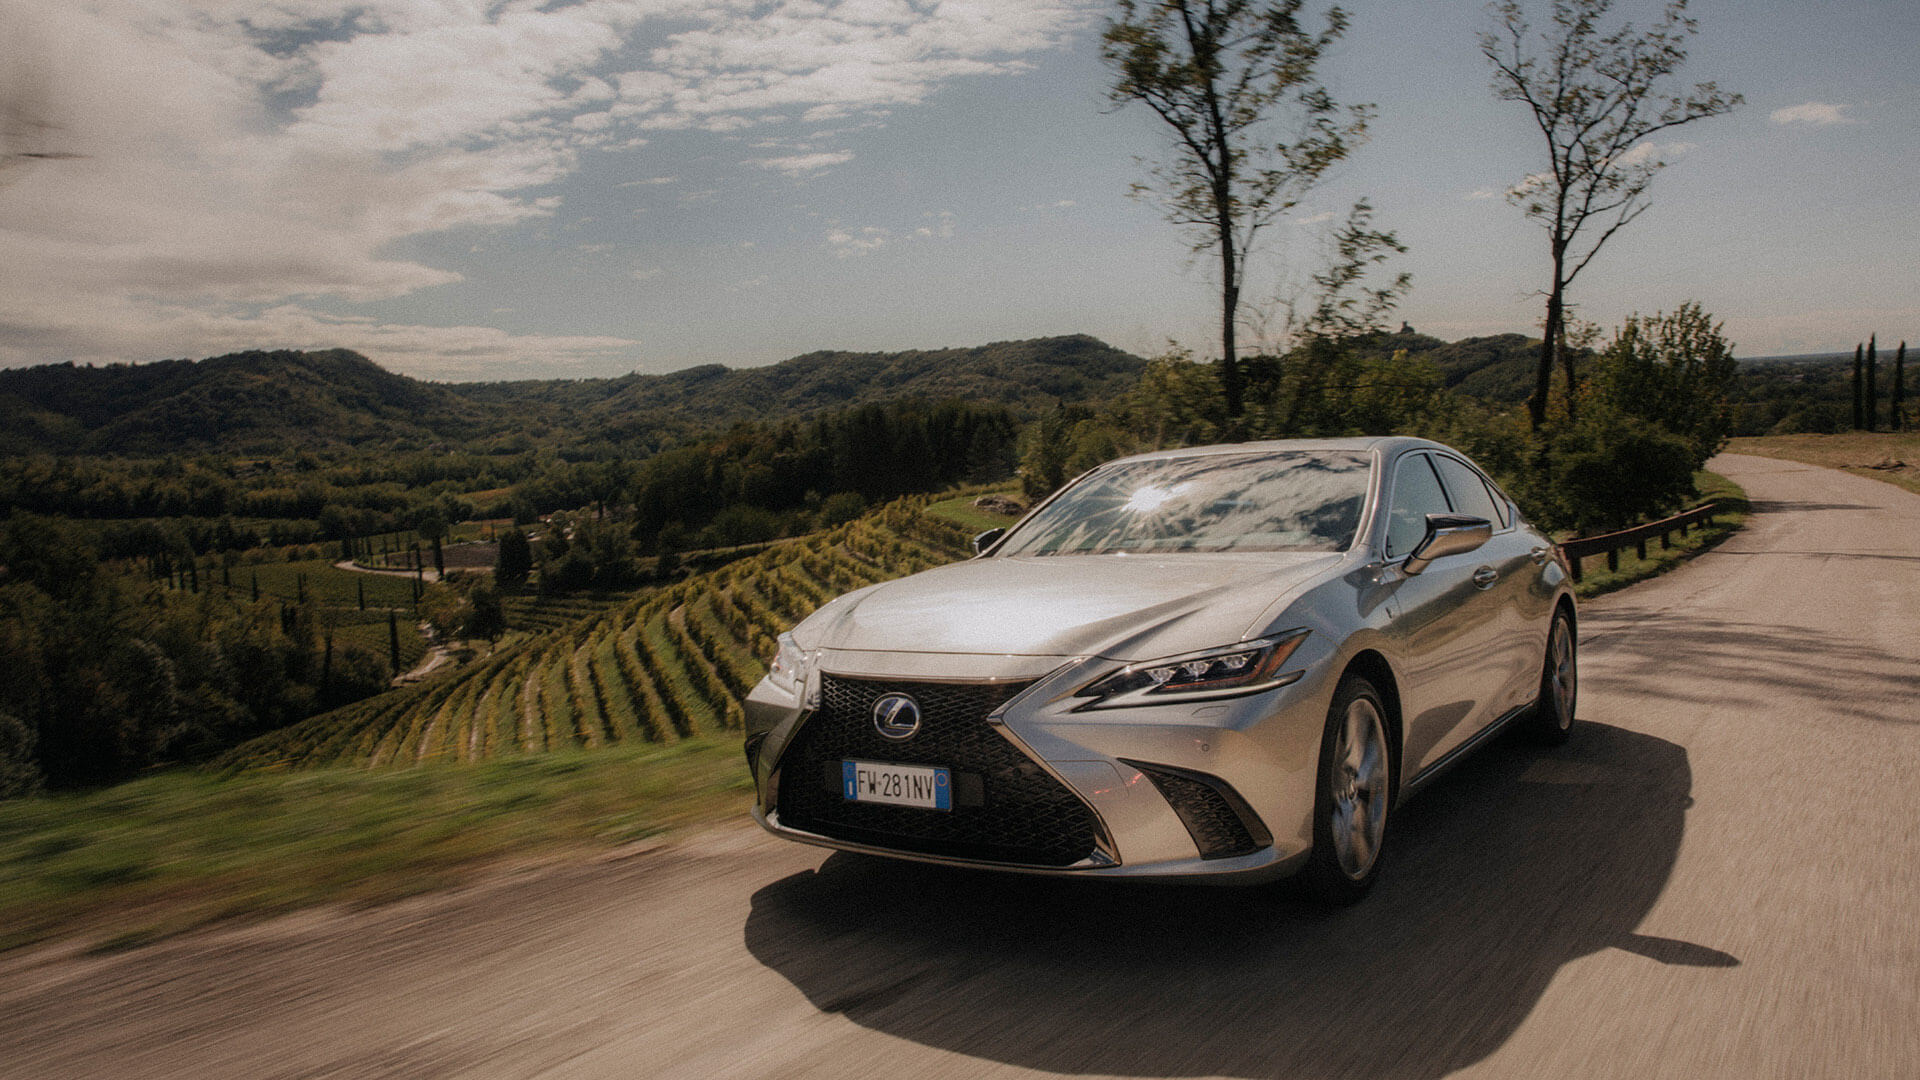 2020 lexus journeys in taste episode 8 gallery 09